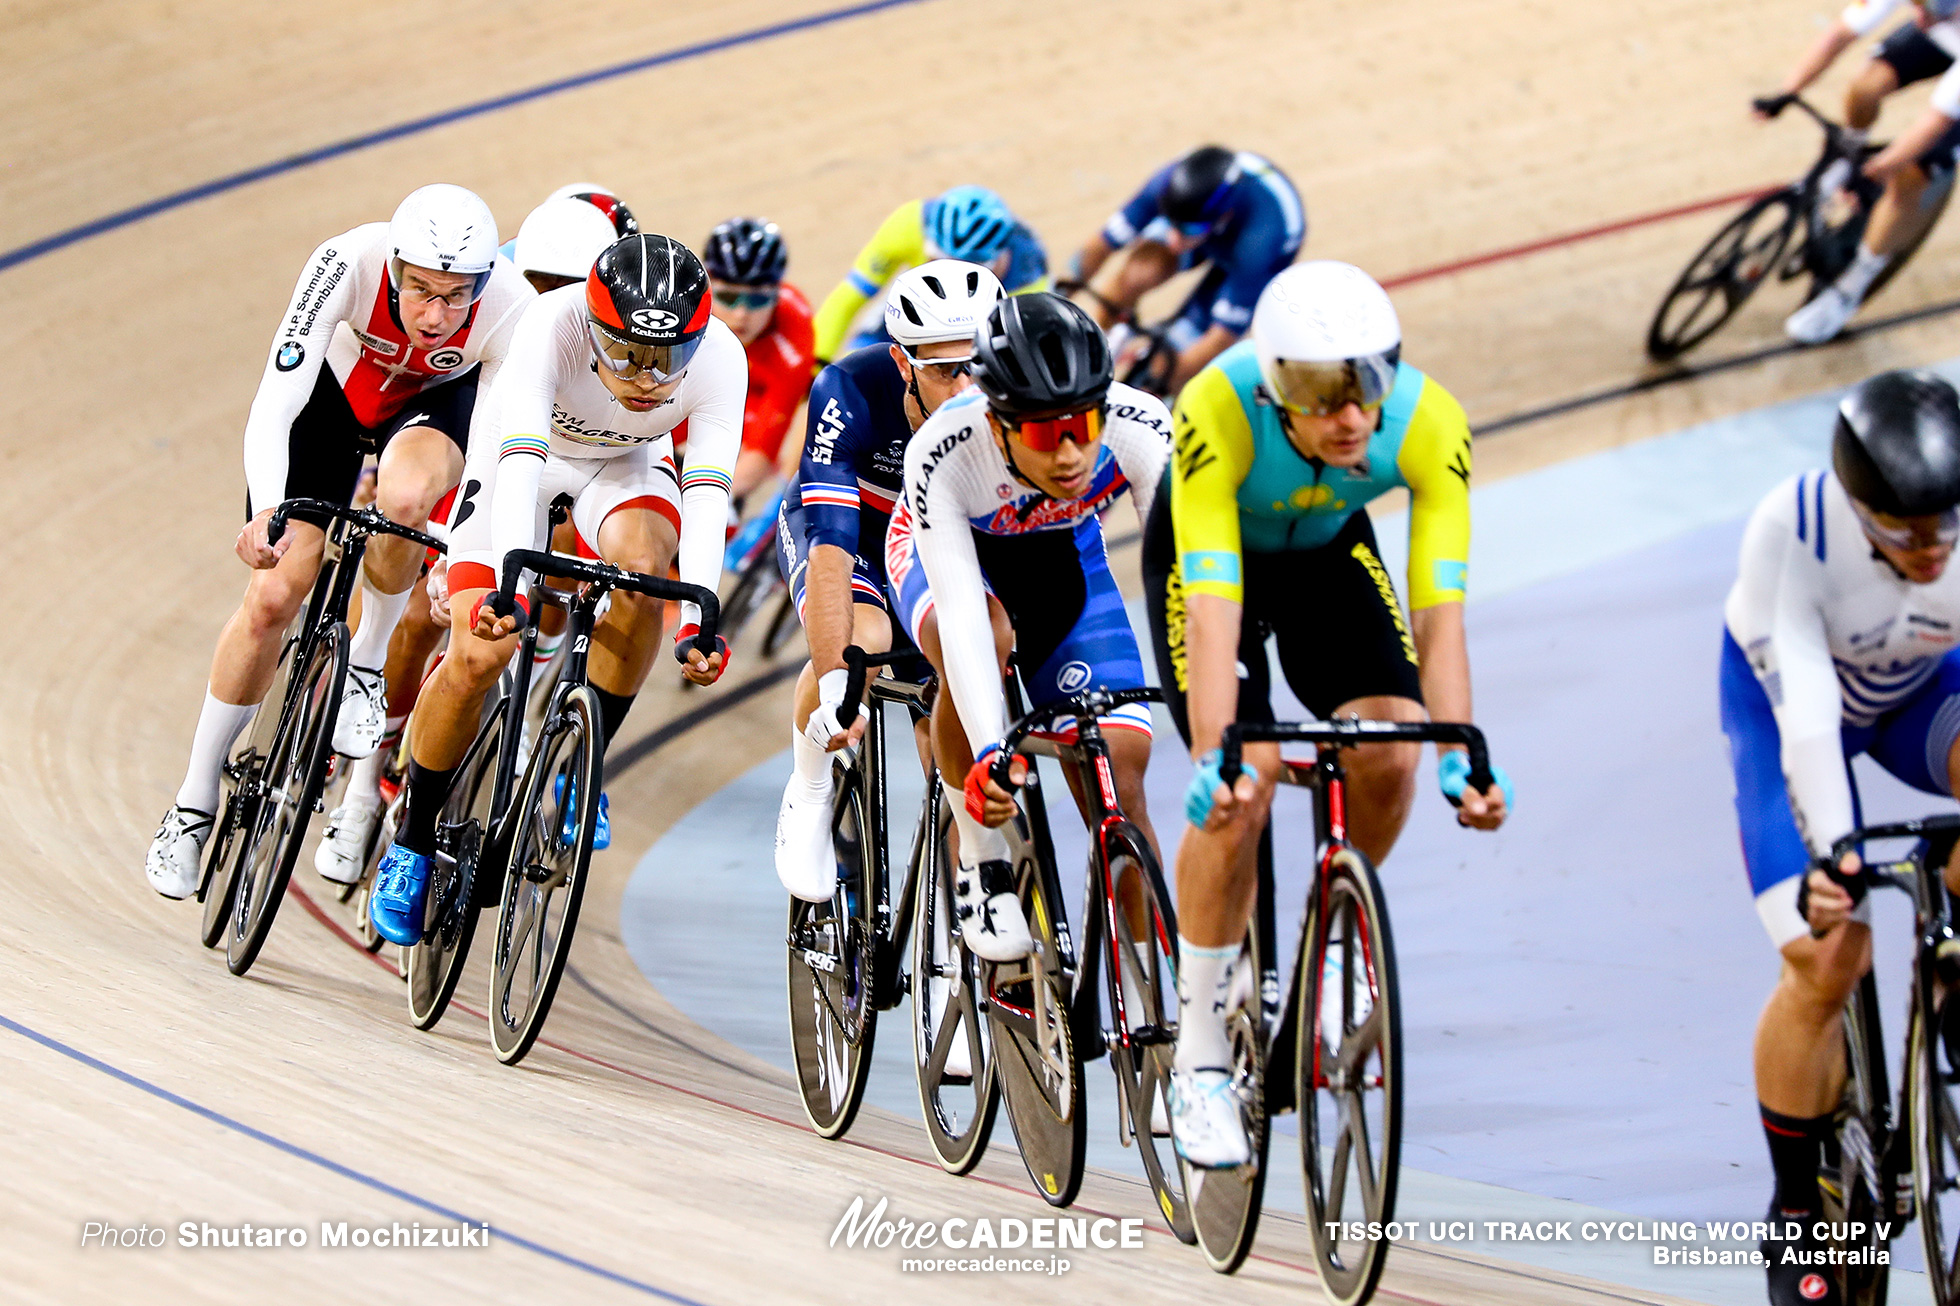 Men's Omnium / Scratch Race / TISSOT UCI TRACK CYCLING WORLD CUP V, Brisbane, Australia